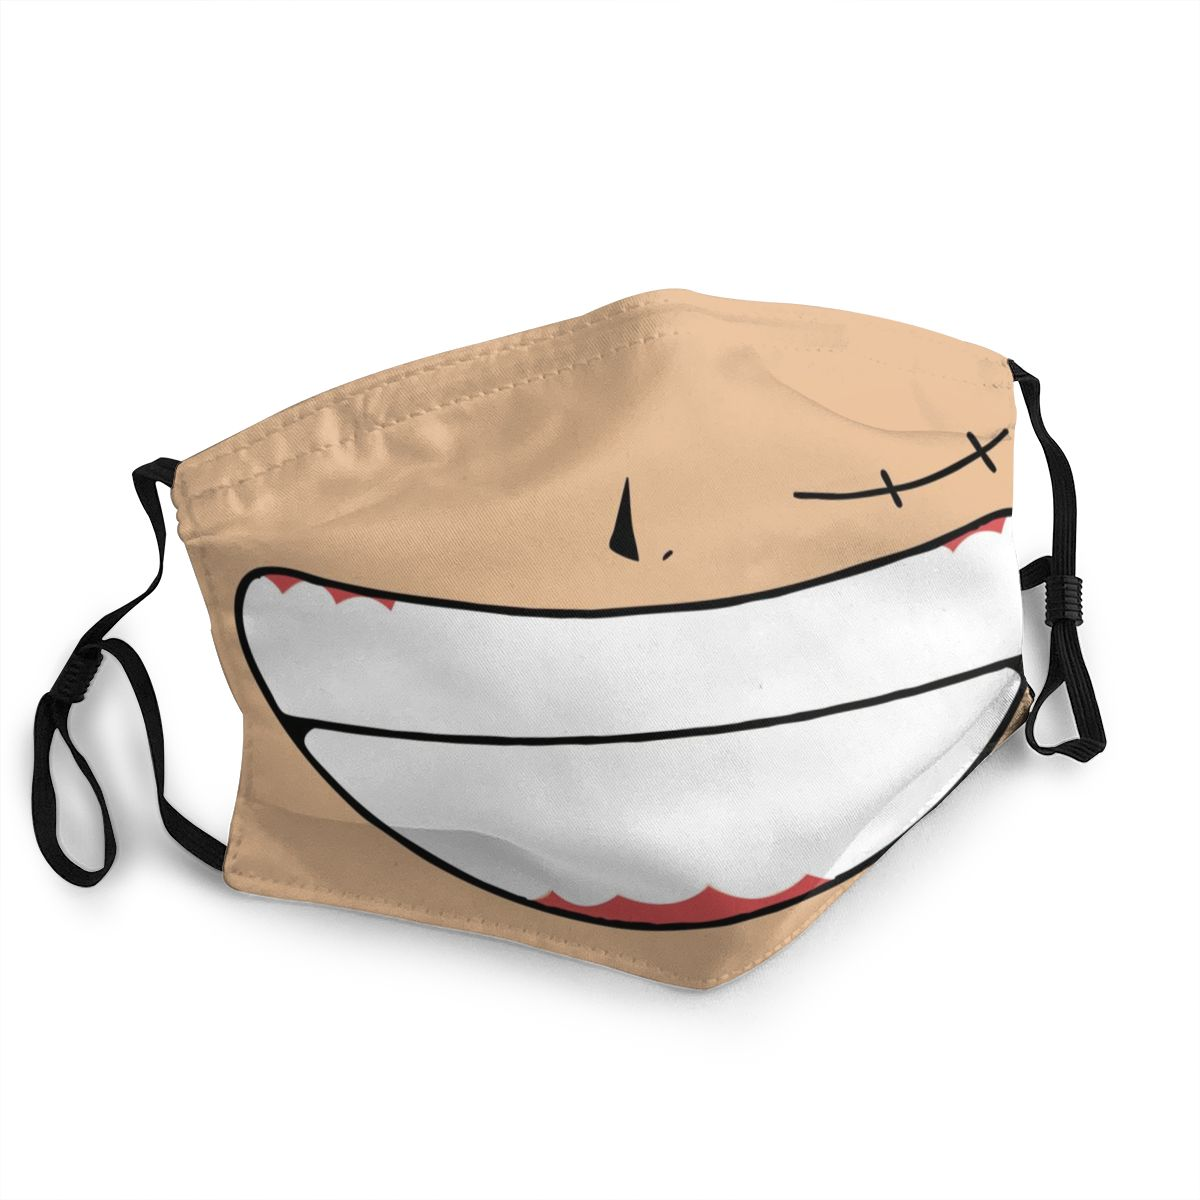 Monkey D. Luffy Smile One Piece Men Women Reusable Face Mask Anime Anti Haze Anti Dust Protection Cover Respirator